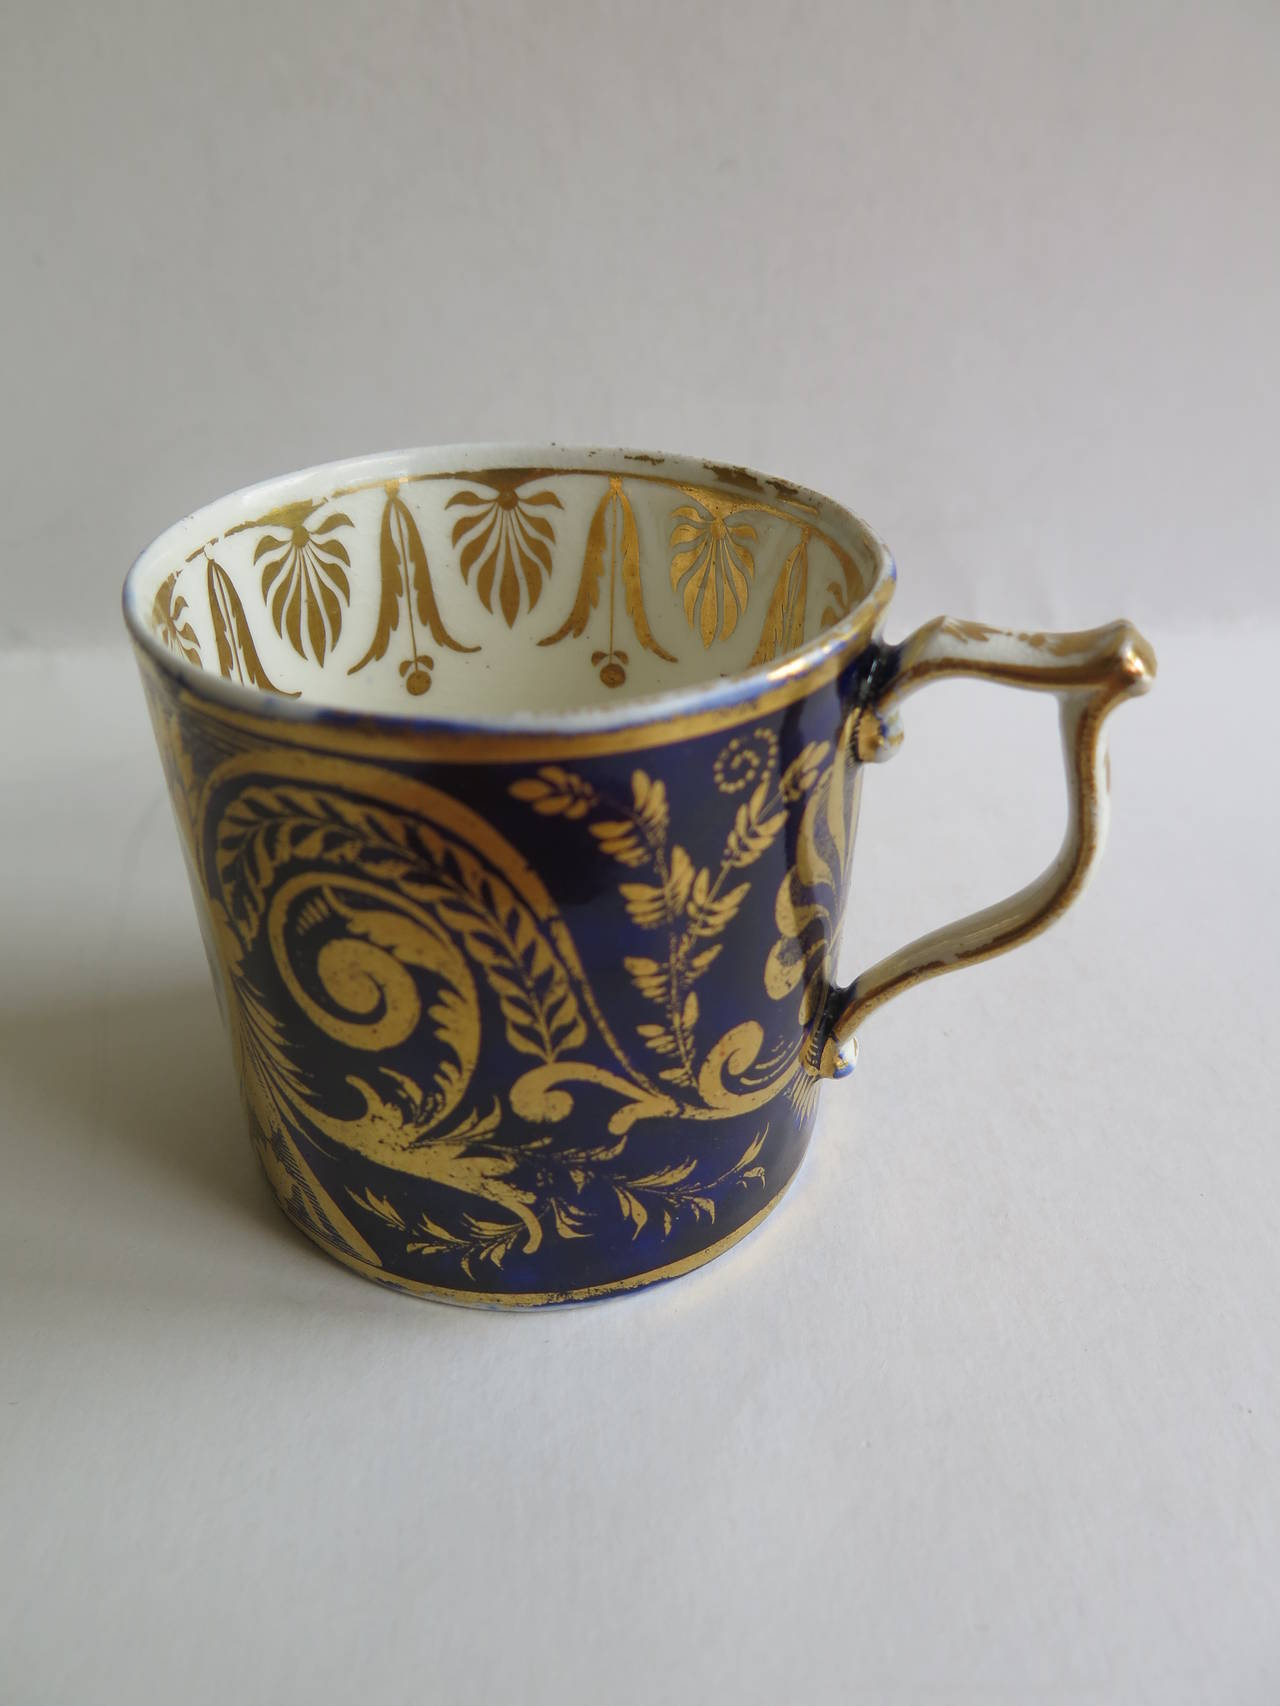 Porcelain George 111rd Derby Coffee Can Hand-Painted Named View Near Edmonton, Ca 1810 For Sale